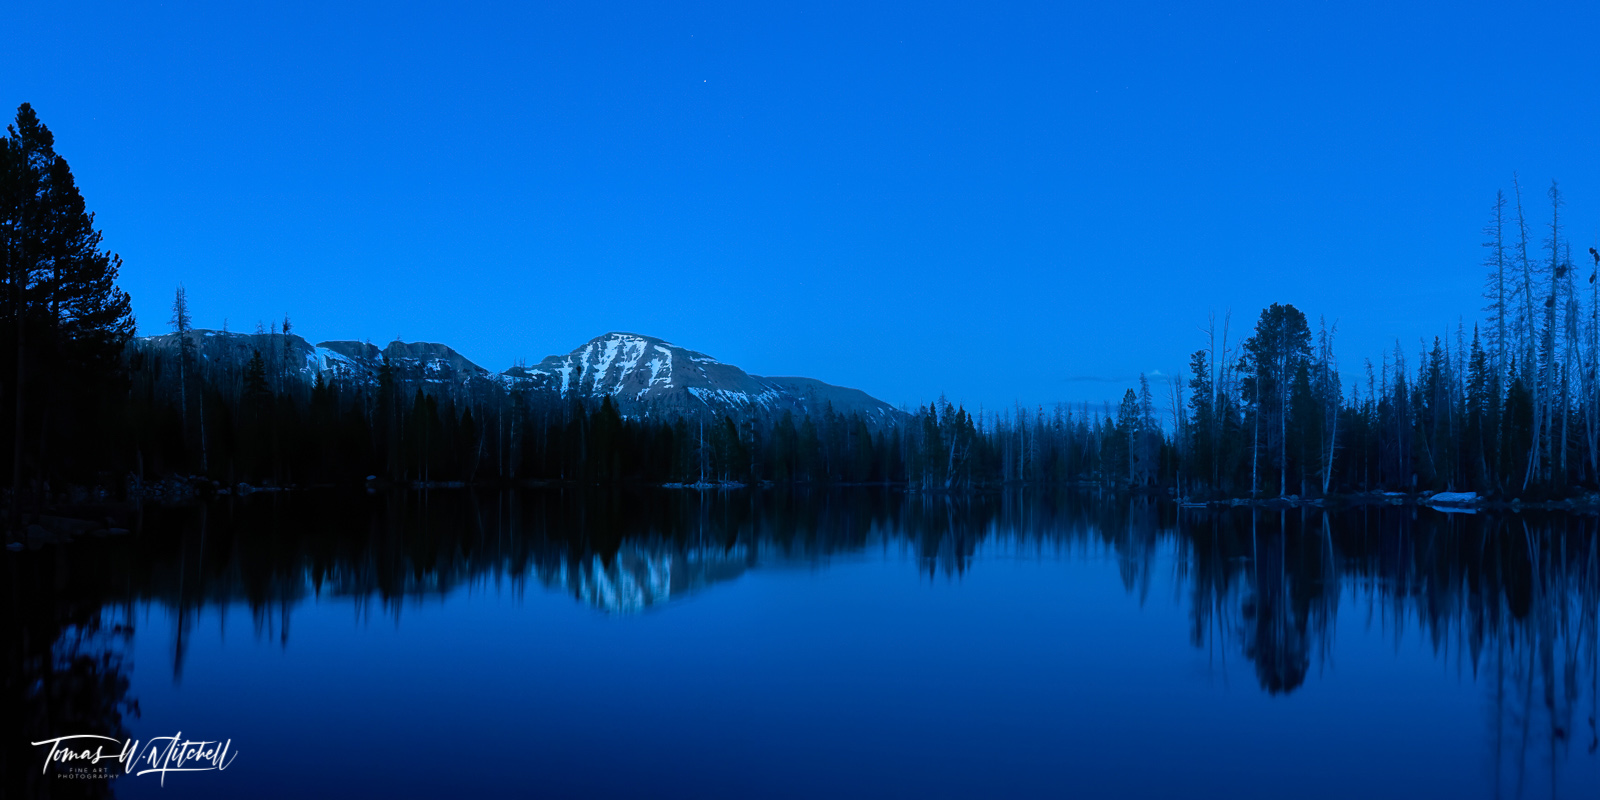 limited edition, fine art, prints, pass lake, utah, uinta mountains, blue hour, moody, lake, mountain, photograph, forest, trees, mount agassiz, snow, photo